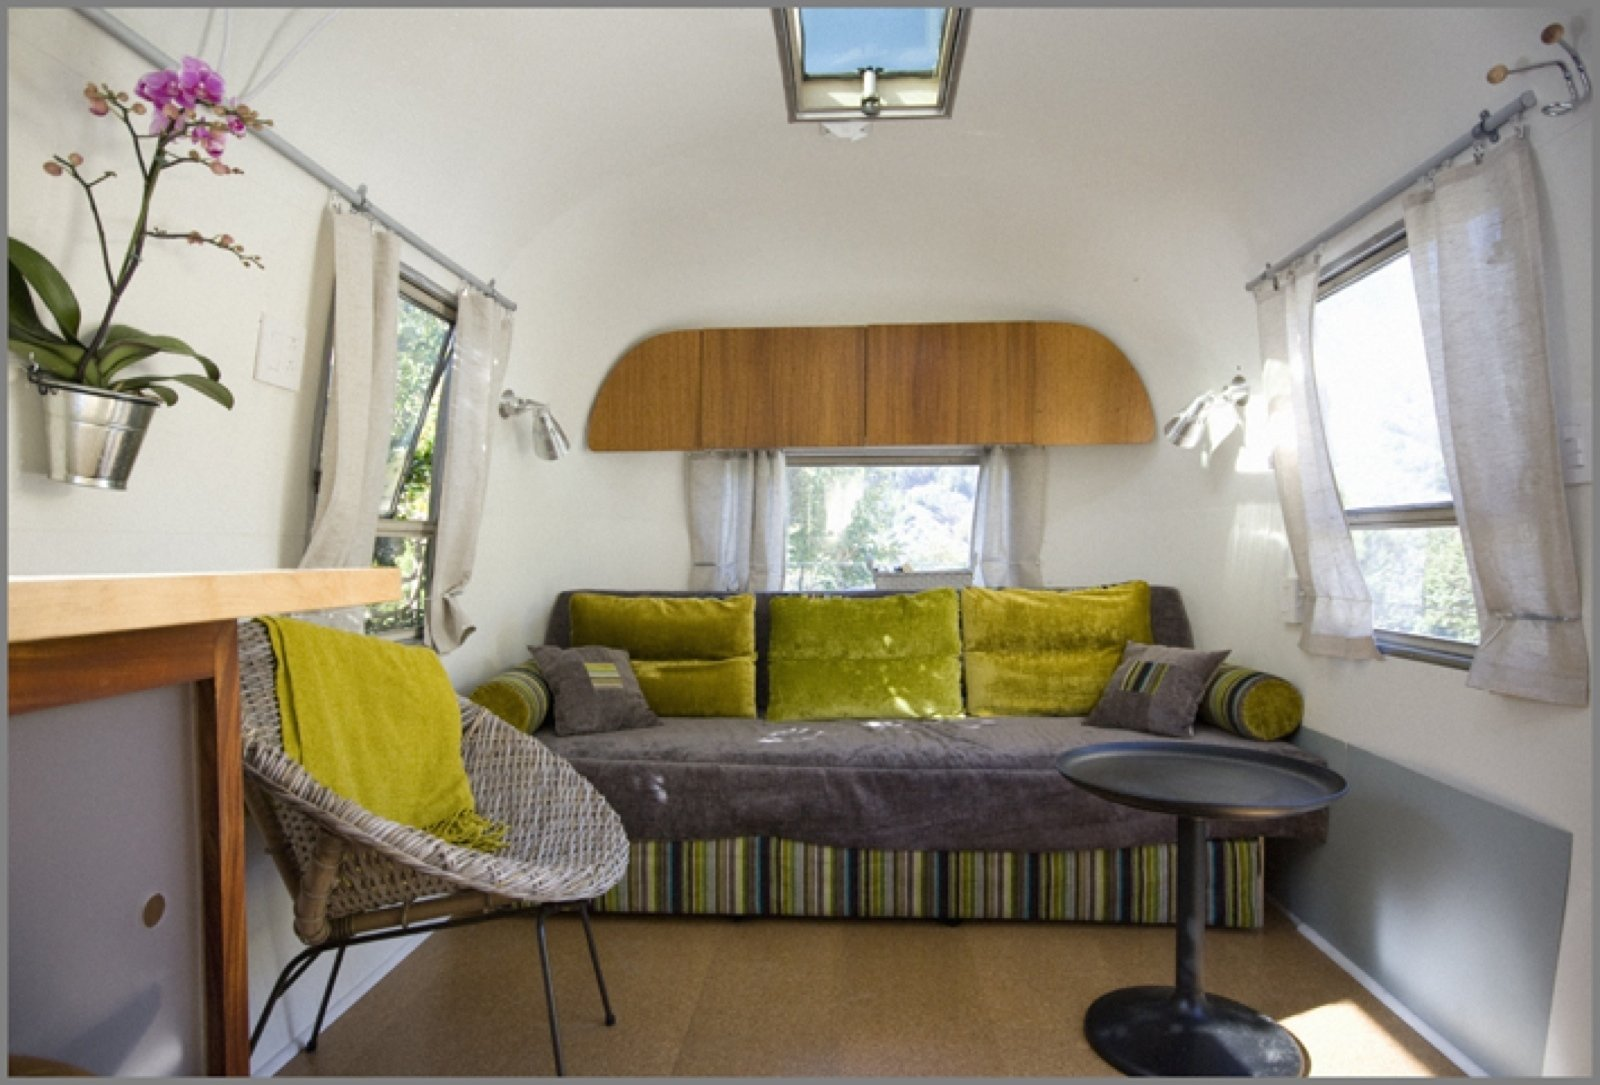 Here's the finished sofa bed. The sofa is upholstered in Designers Guild fabric. The curtains are from Ikea. The chair is from Cost Plus. And the wall cupboard above incorporates some of the trailer's original mahogany wood.  8 Ways to Renovate an Airstream by Erika Heet from Big Sur Airstream Renovation